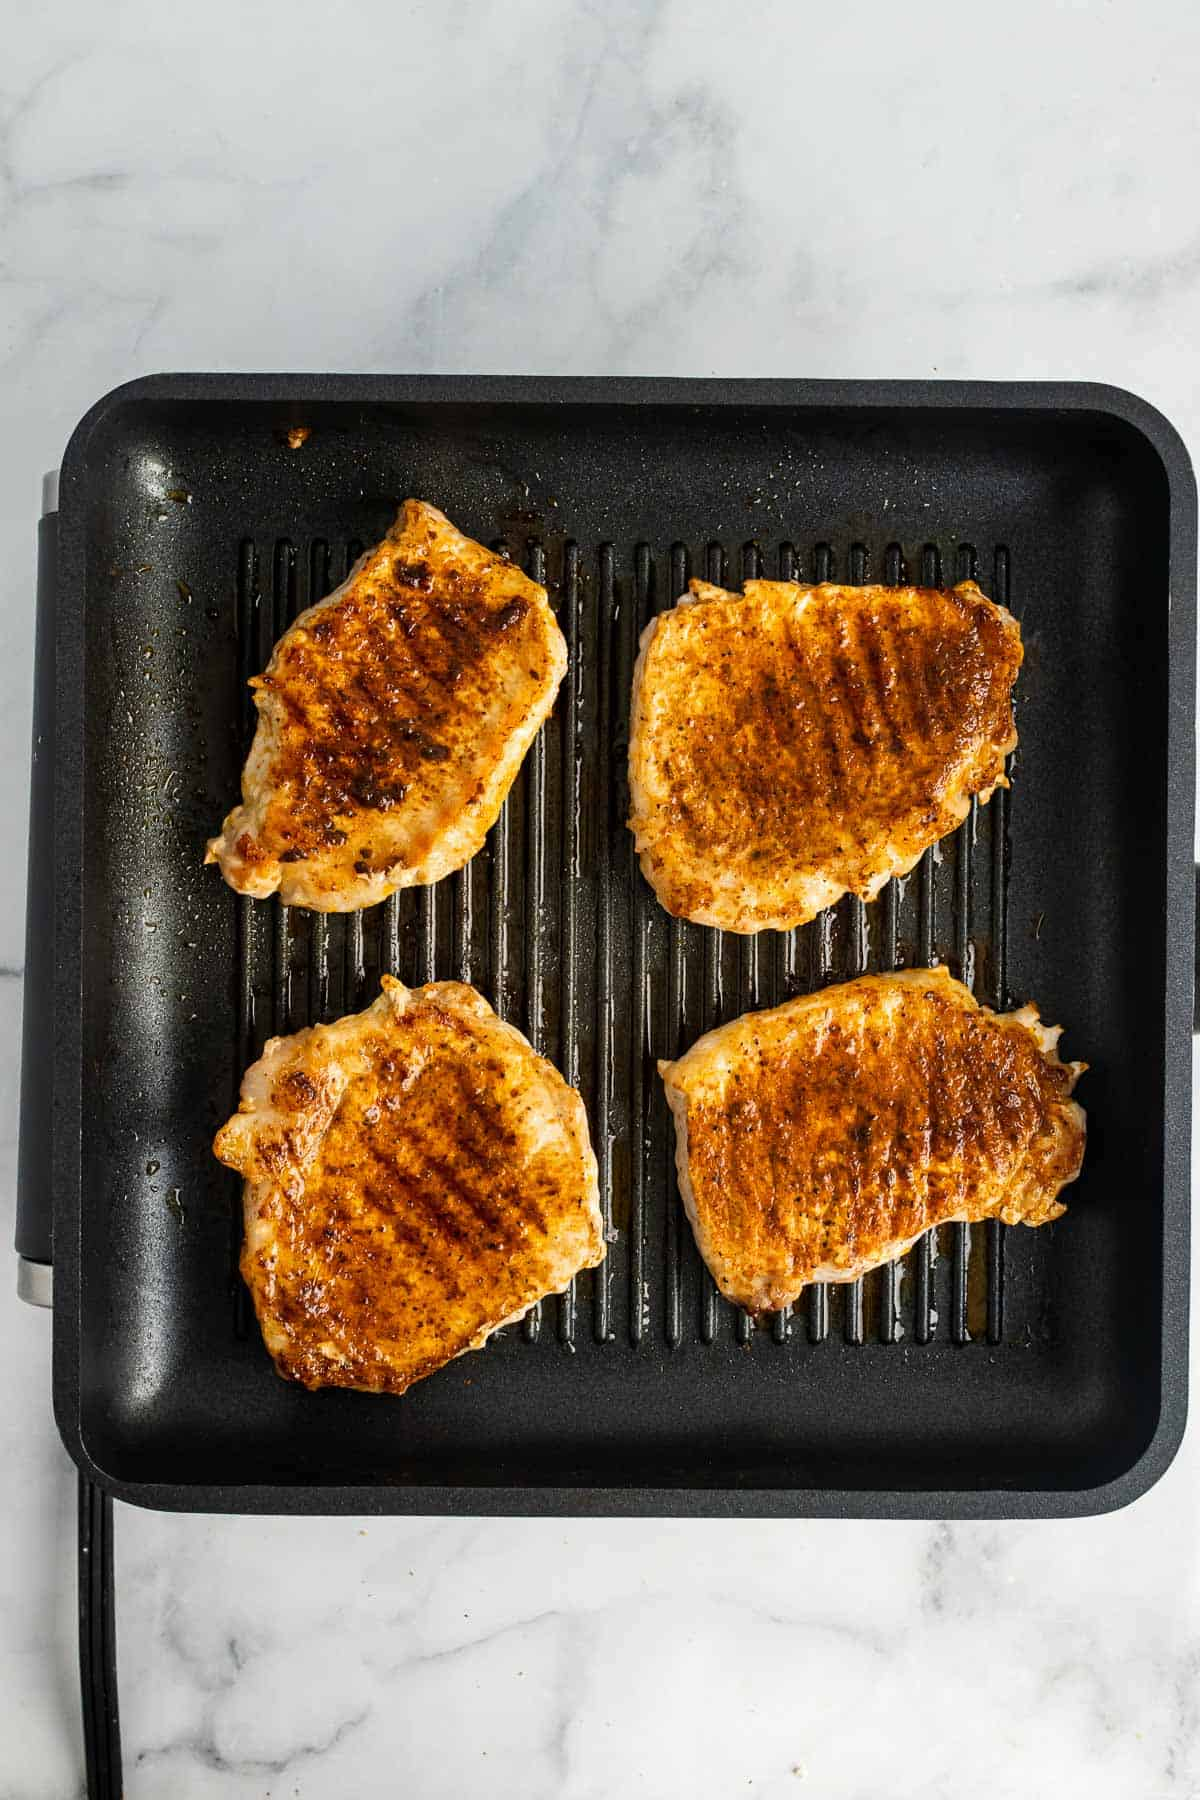 Fully cooked pork chops on a grilling pan